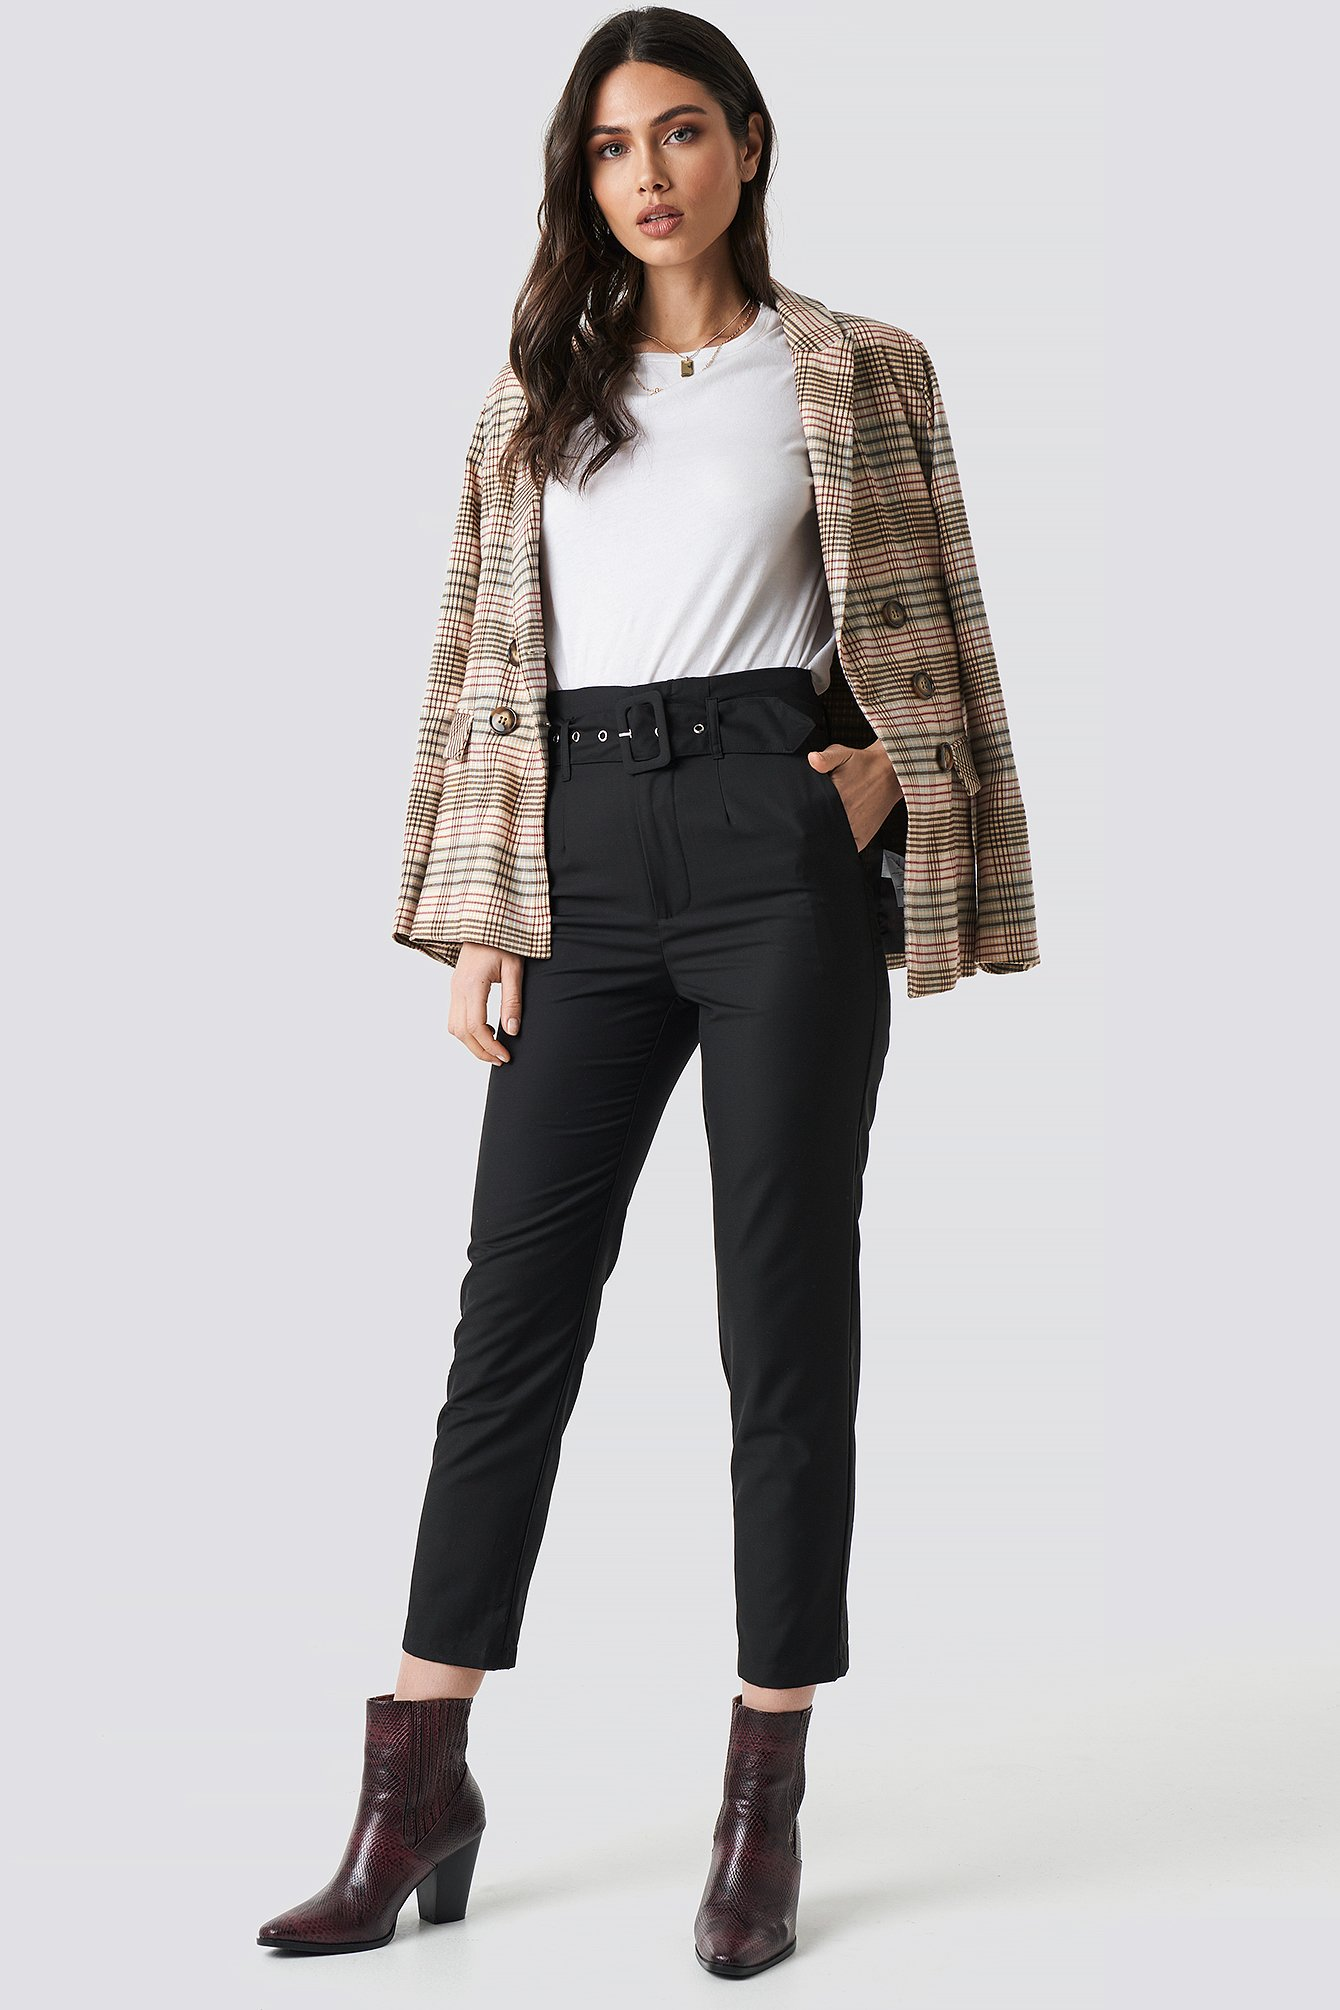 High Waist Belted Pants Sort by Nakdclassic